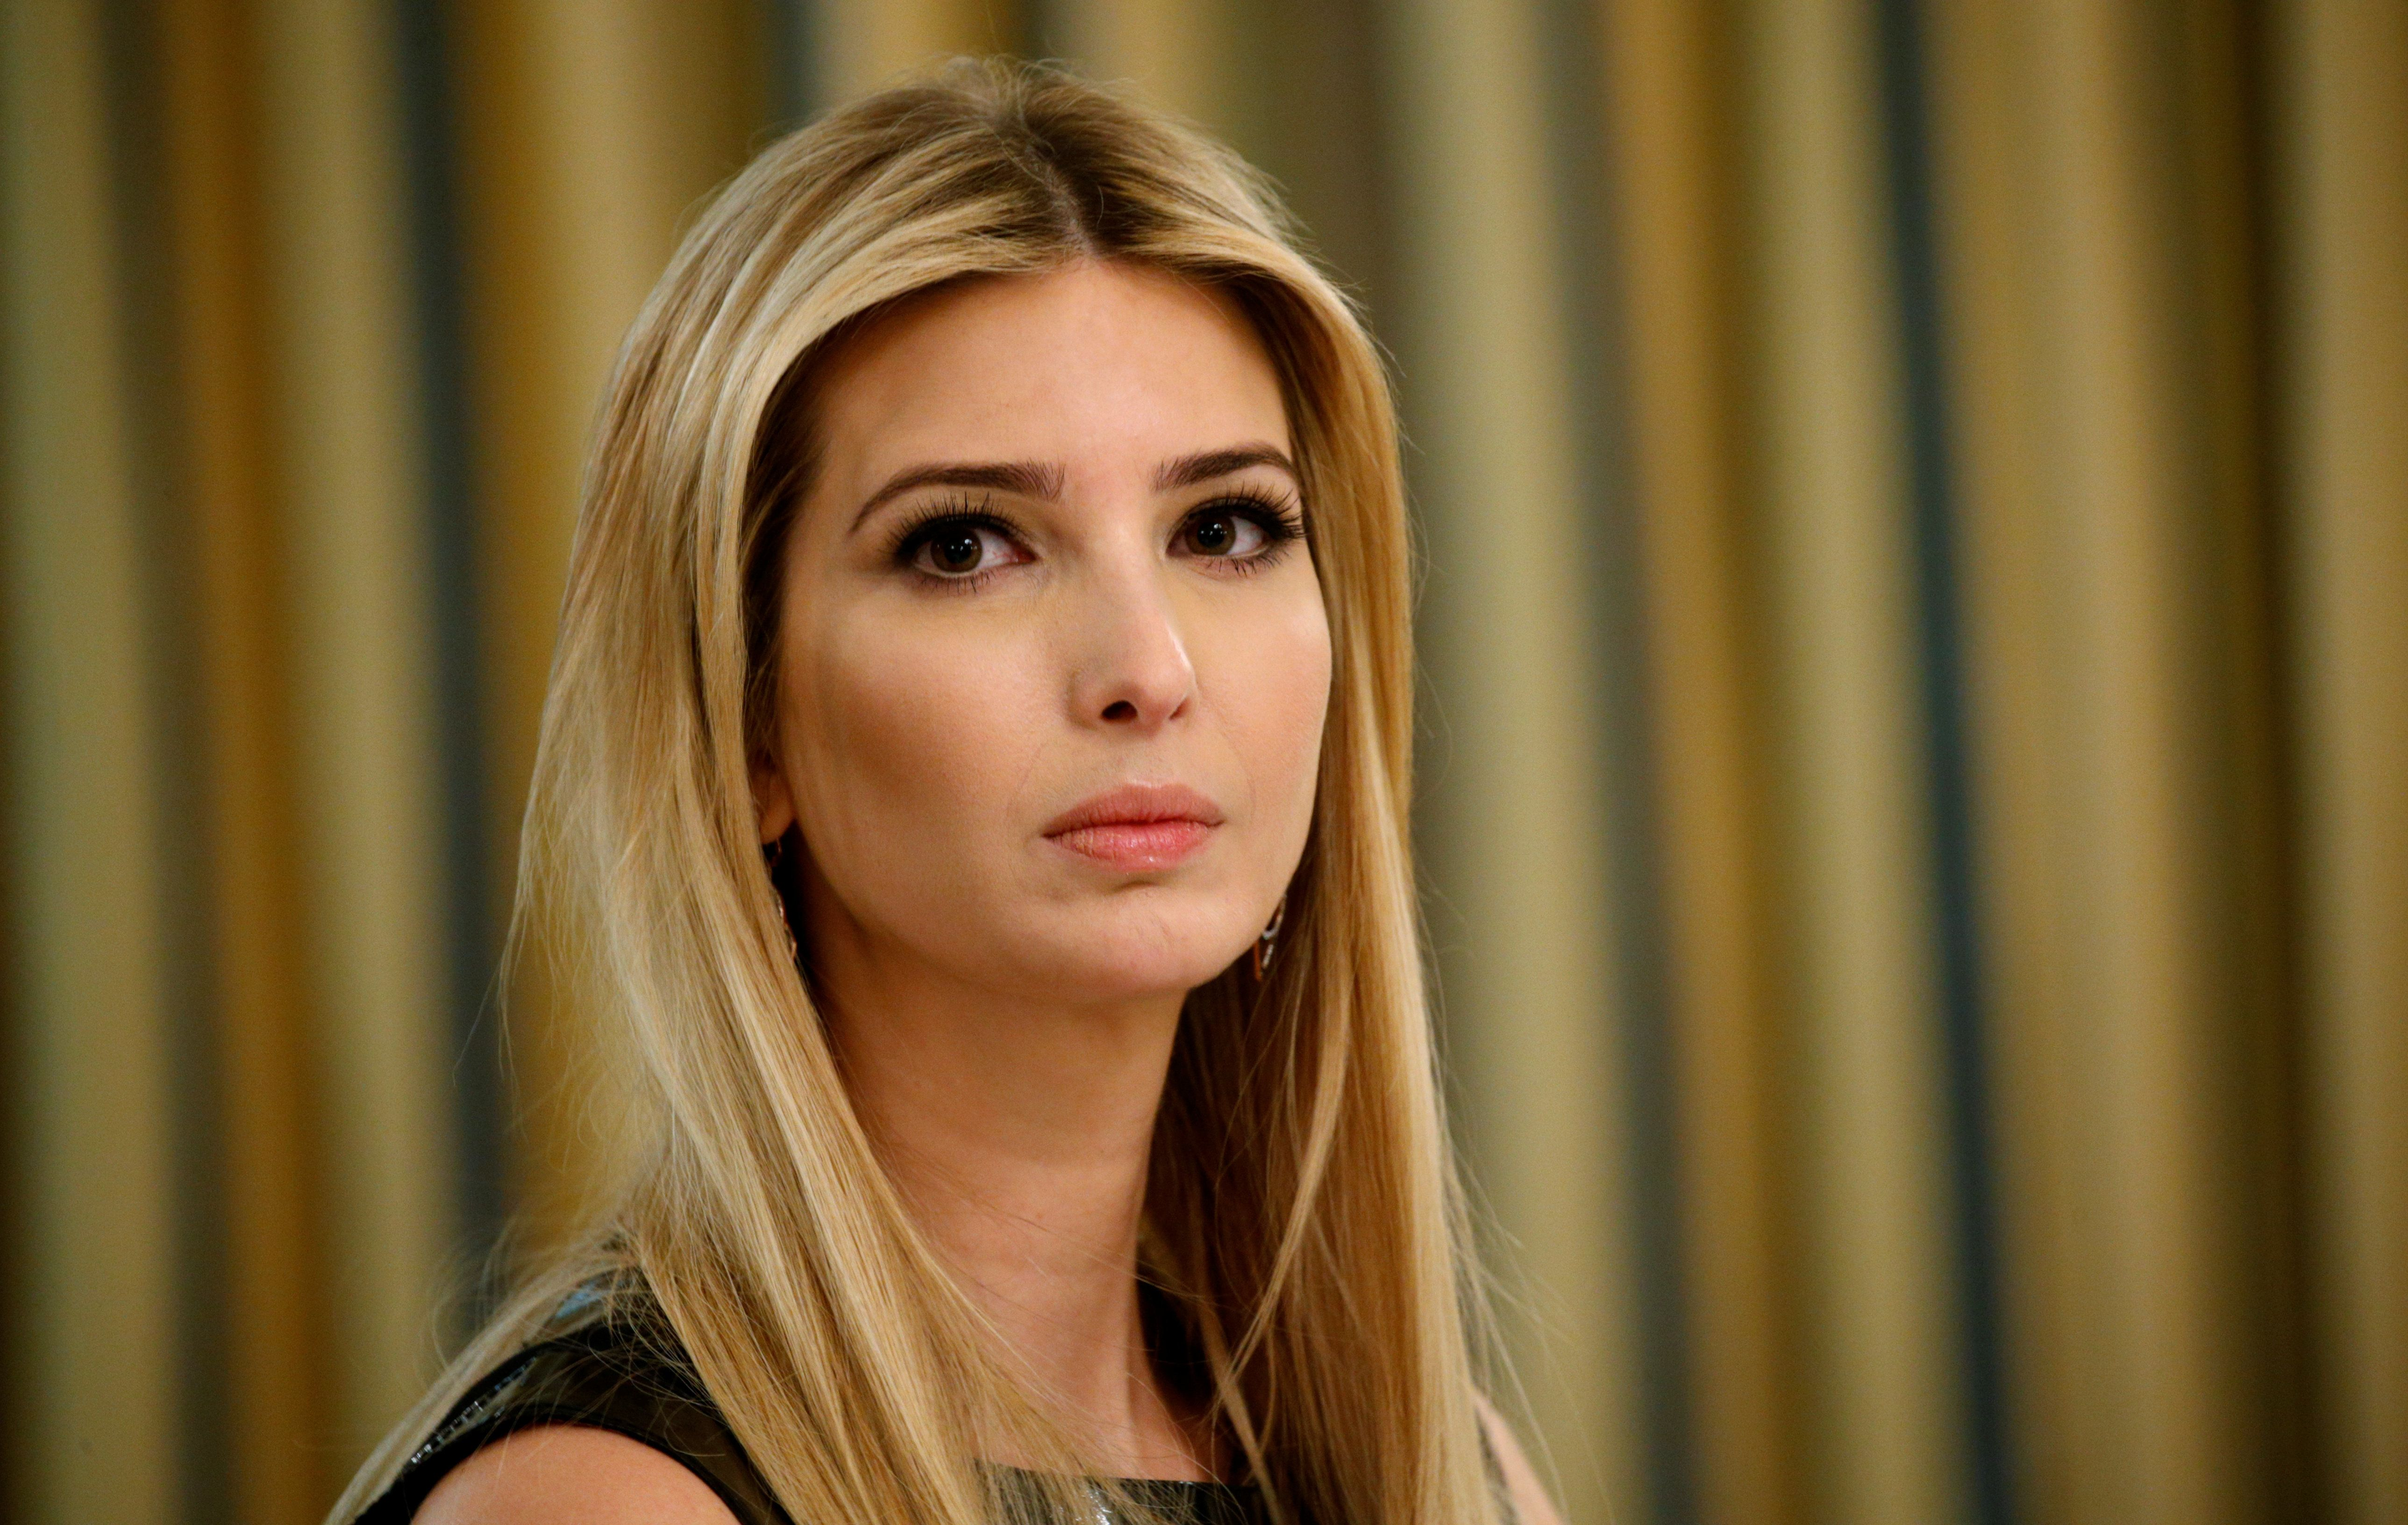 Ivanka Trump at the White House on Feb. 3.